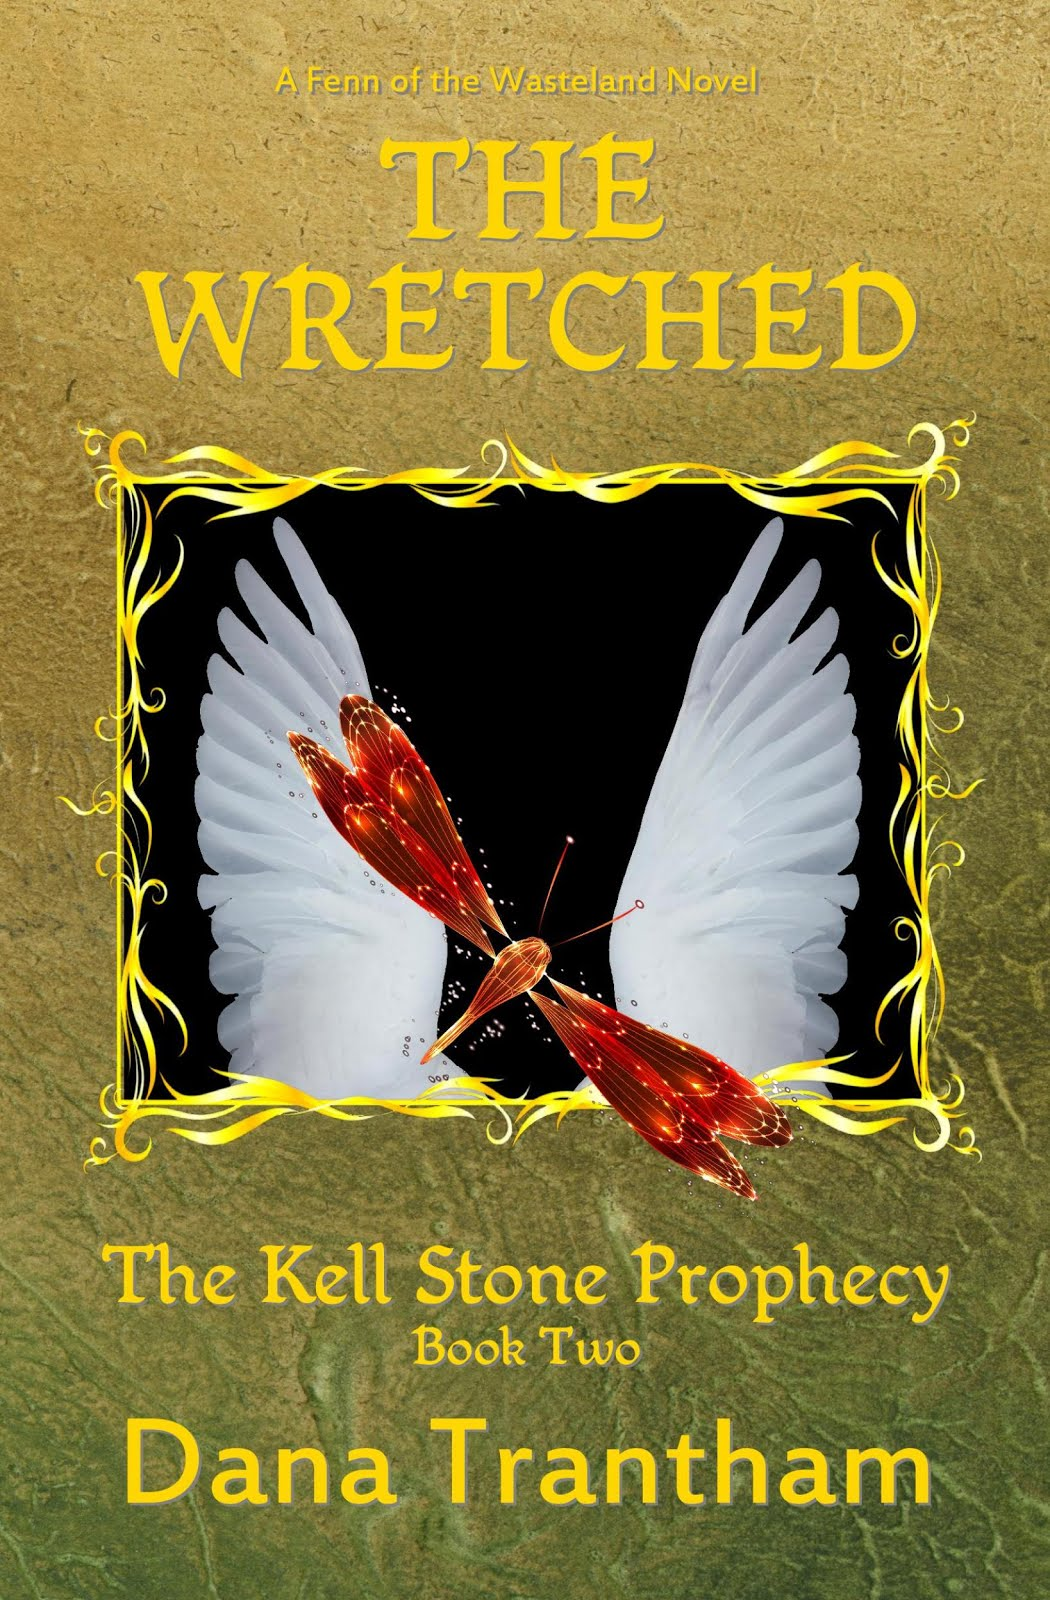 The Wretched (The Kell Stone Prophecy Book Two)